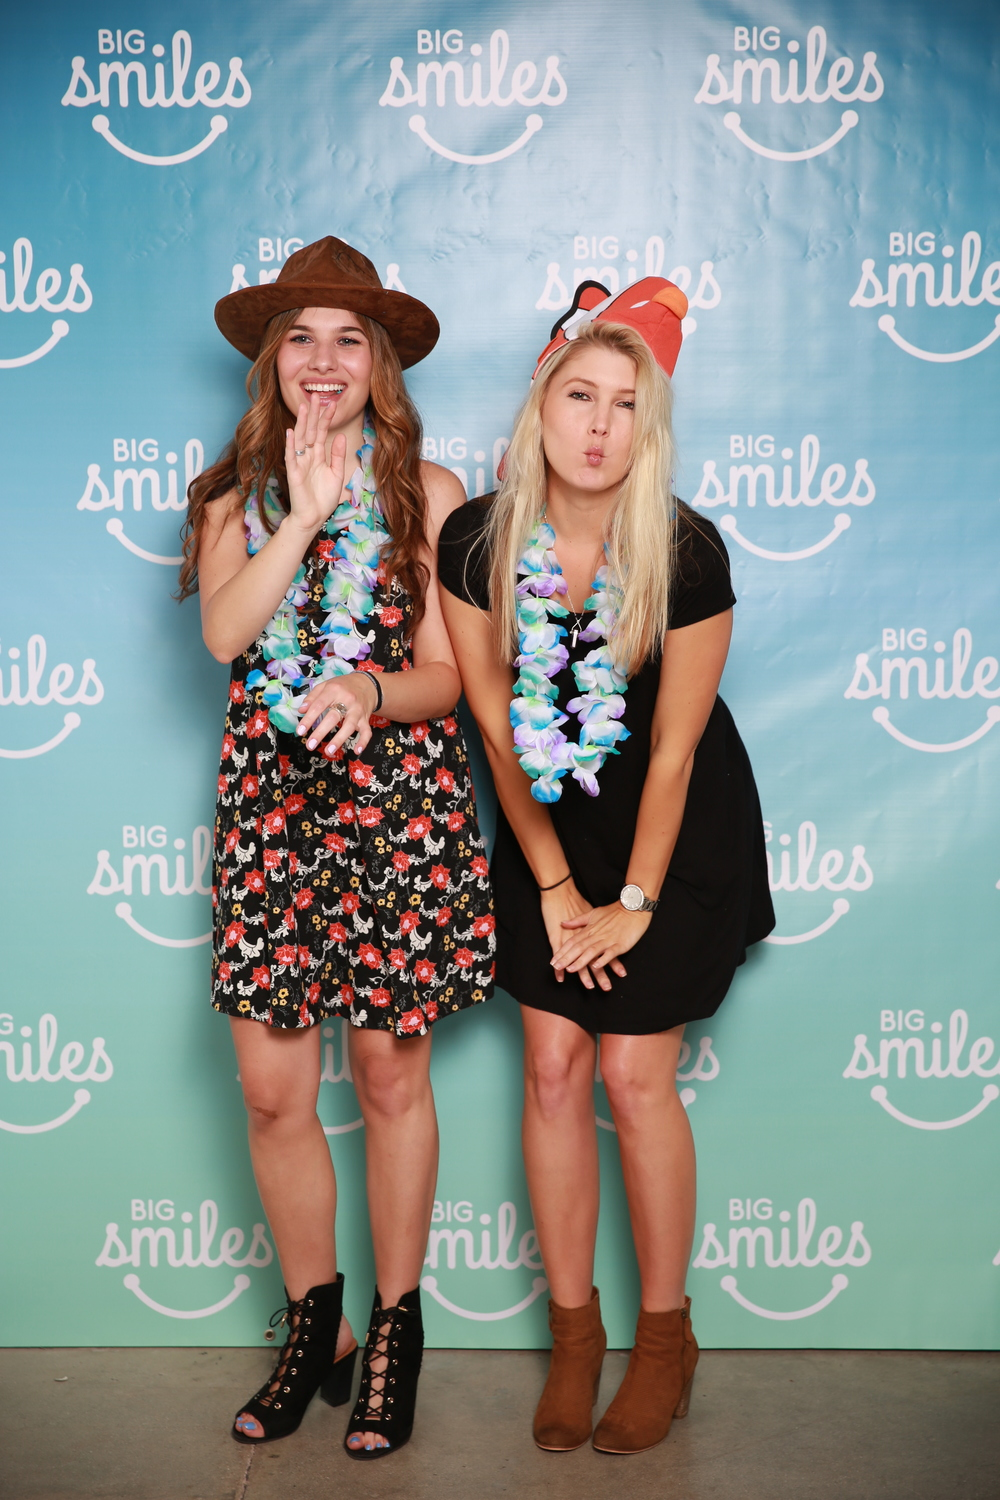 7.30.16 Big Smiles Program-227.JPG